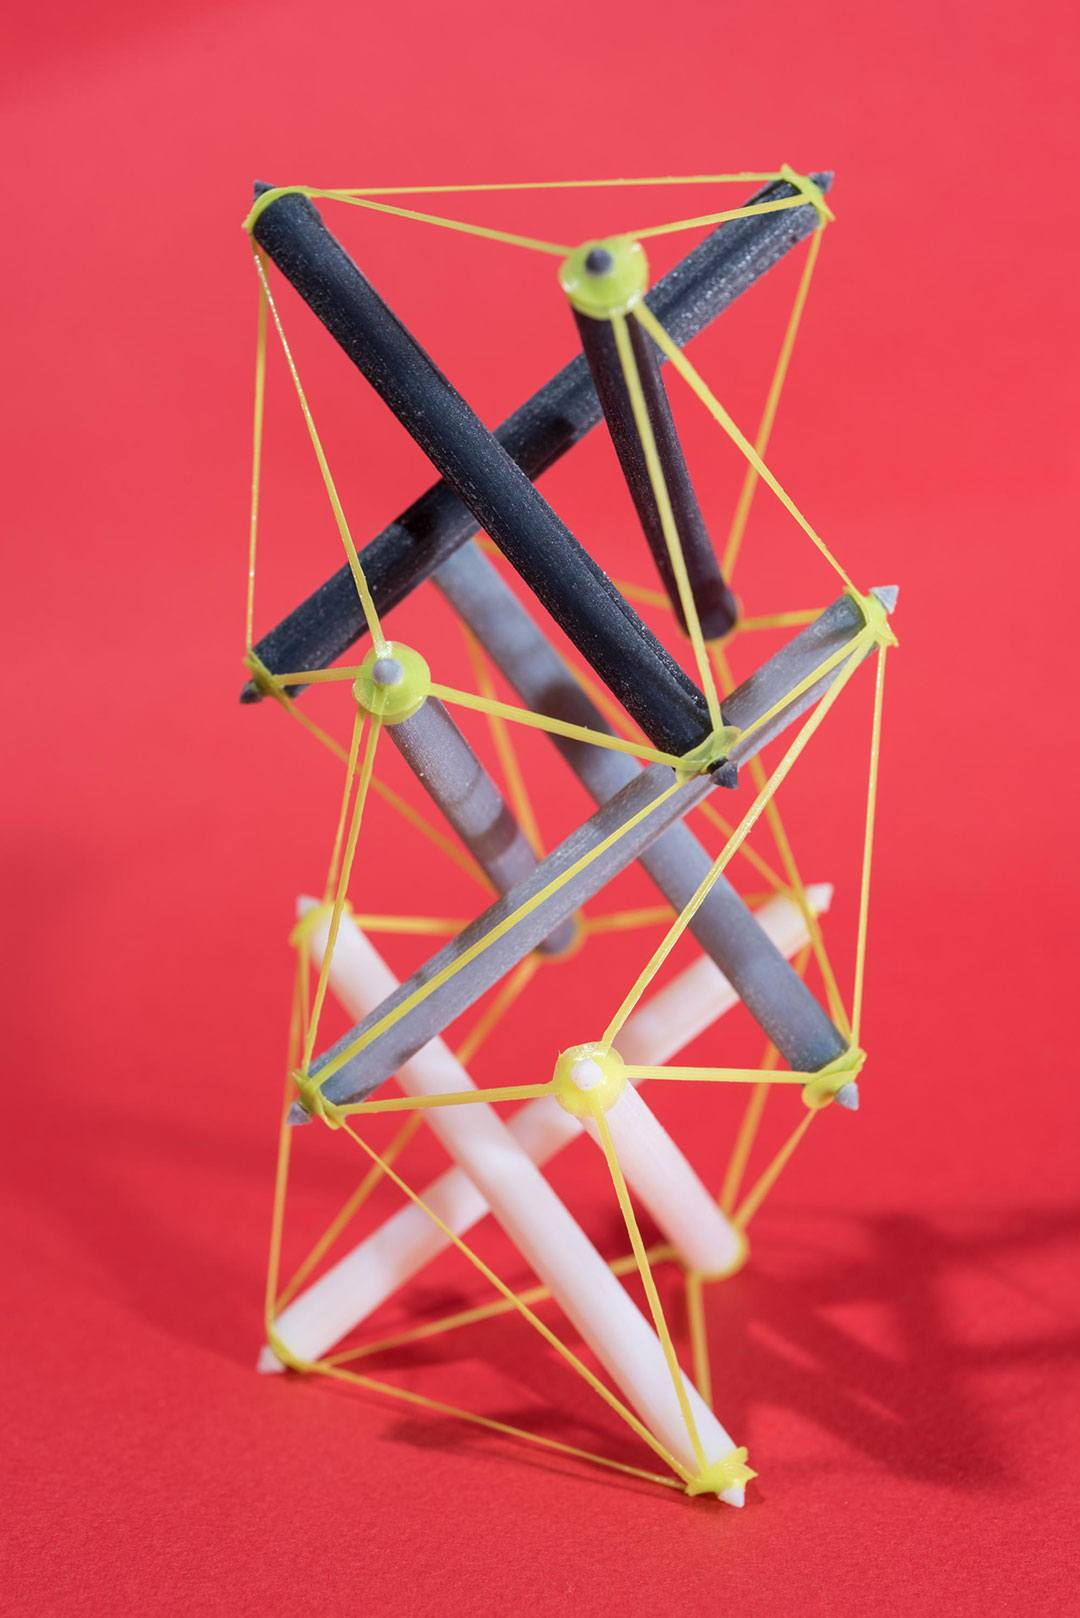 3D Printed Tensegrity Objects